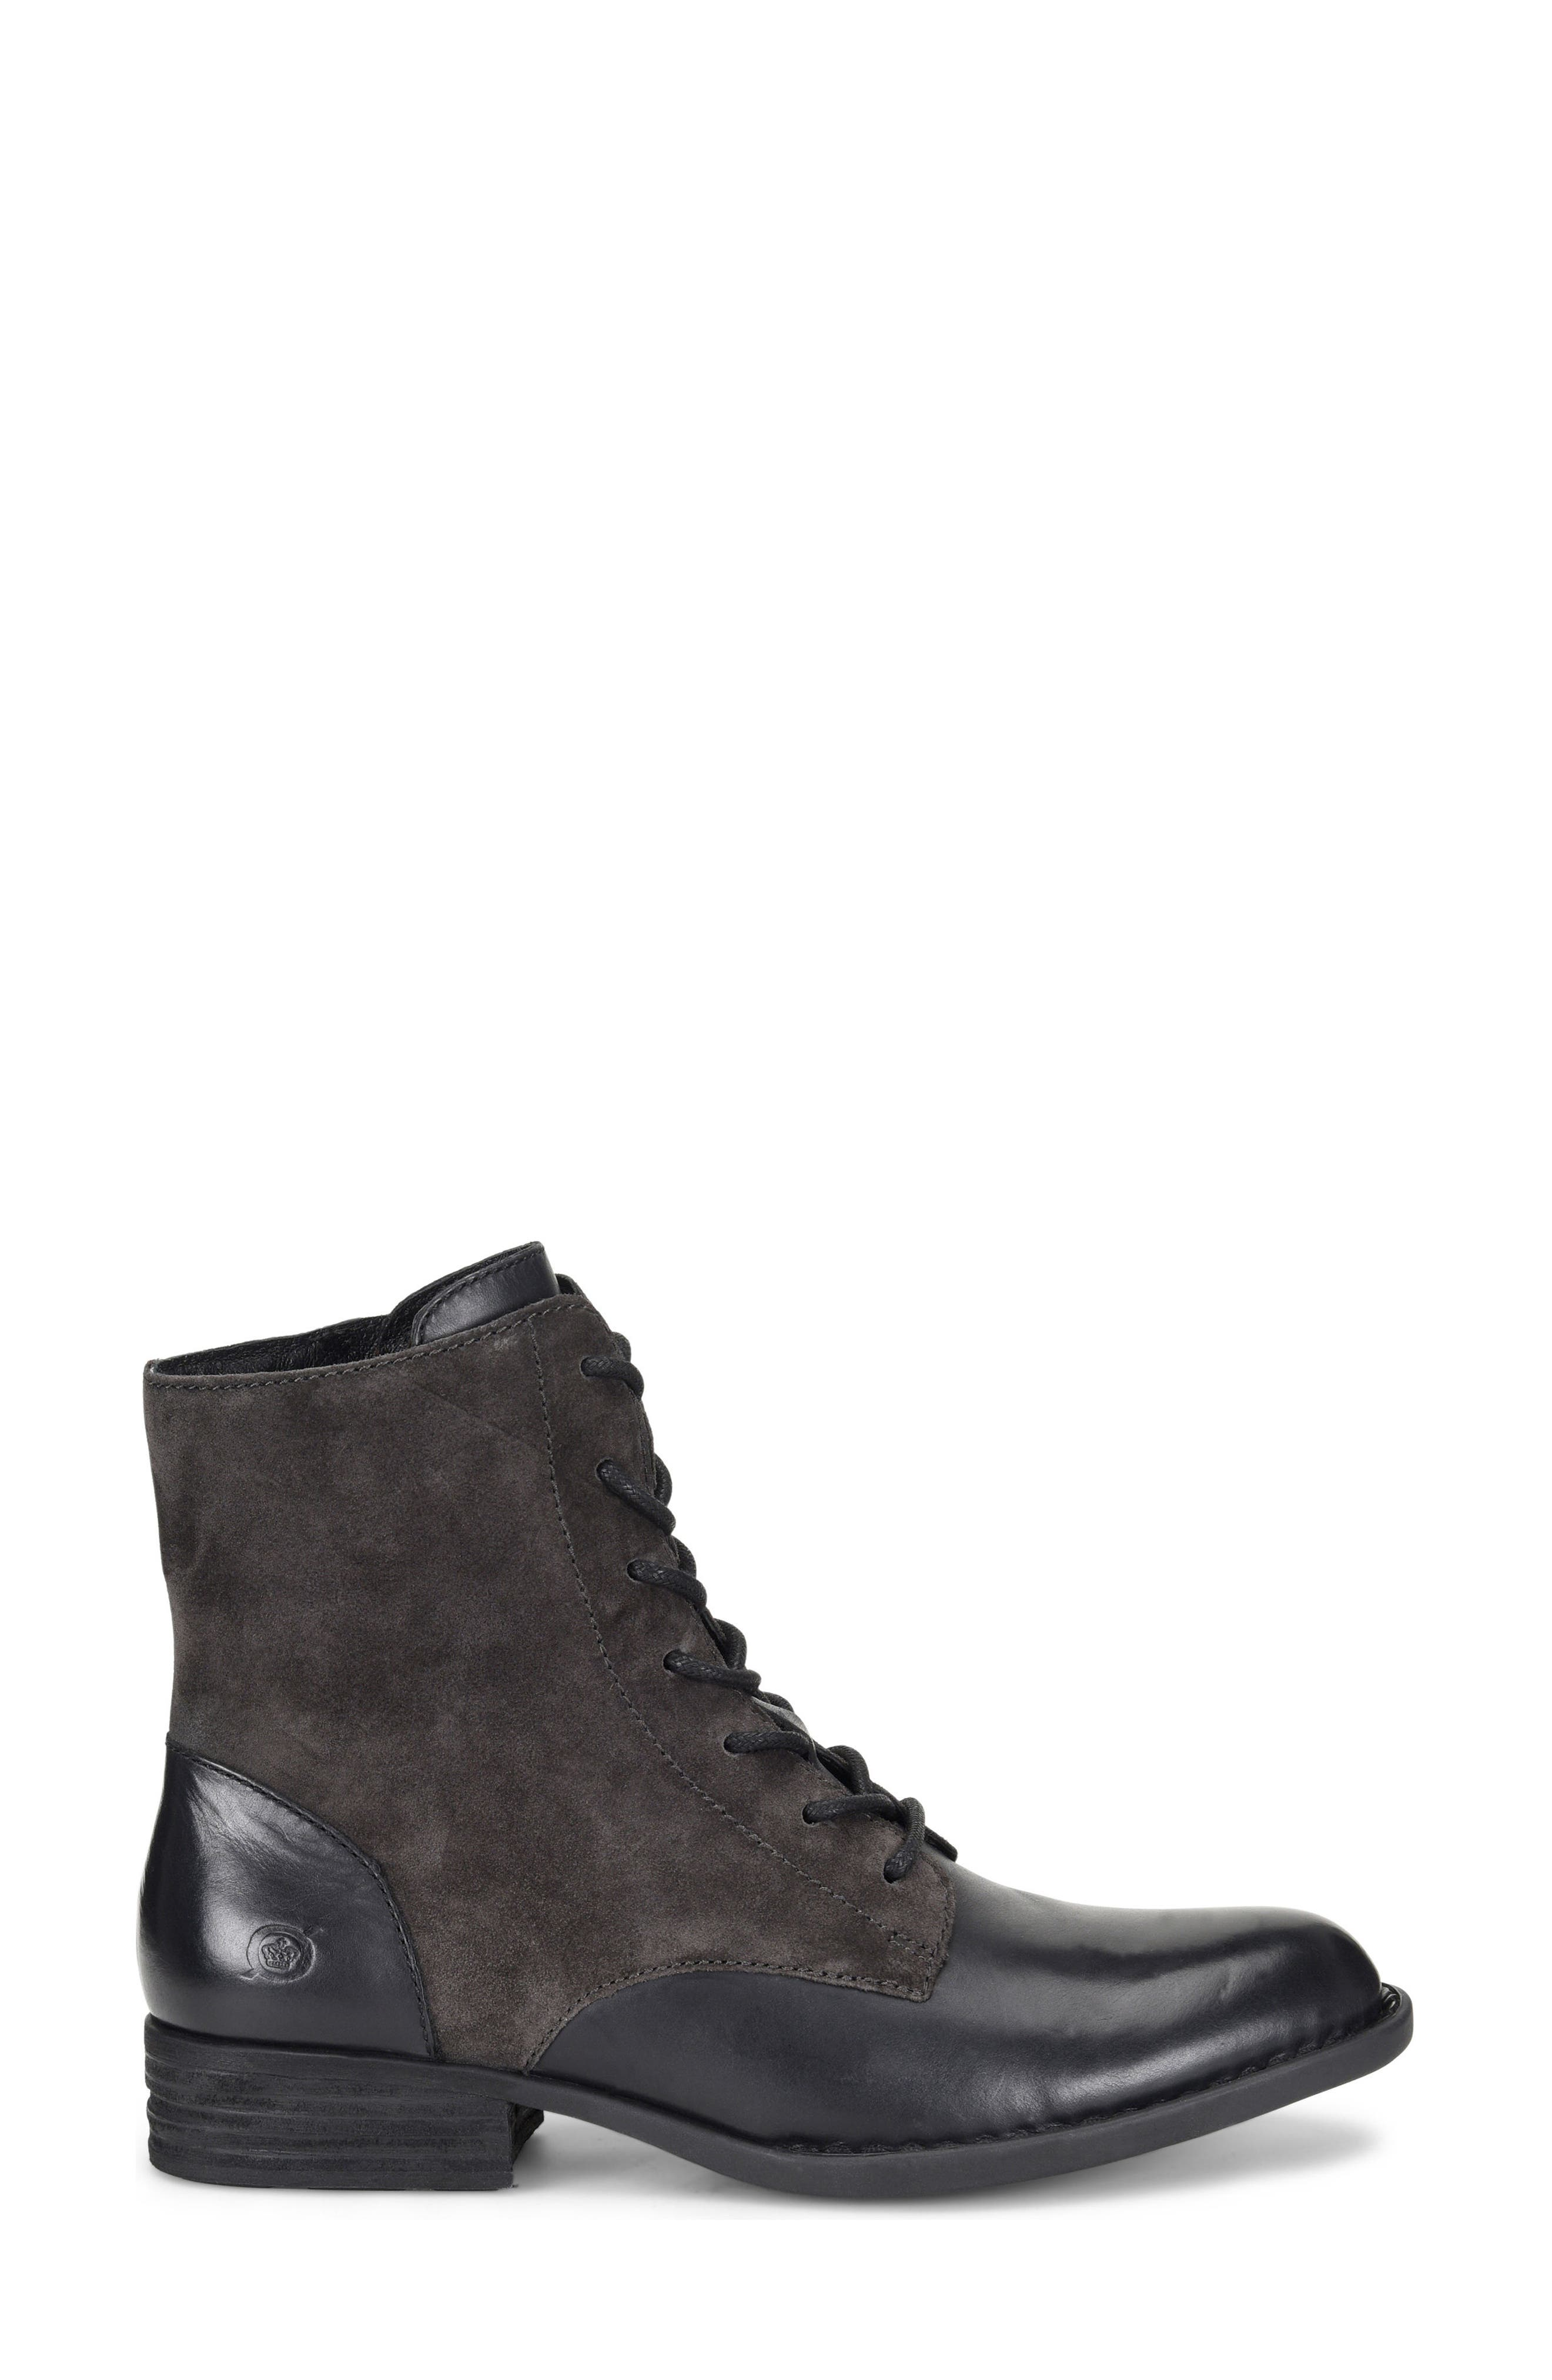 Alternate Image 3  - Børn Clements Lace-Up Boot (Women)